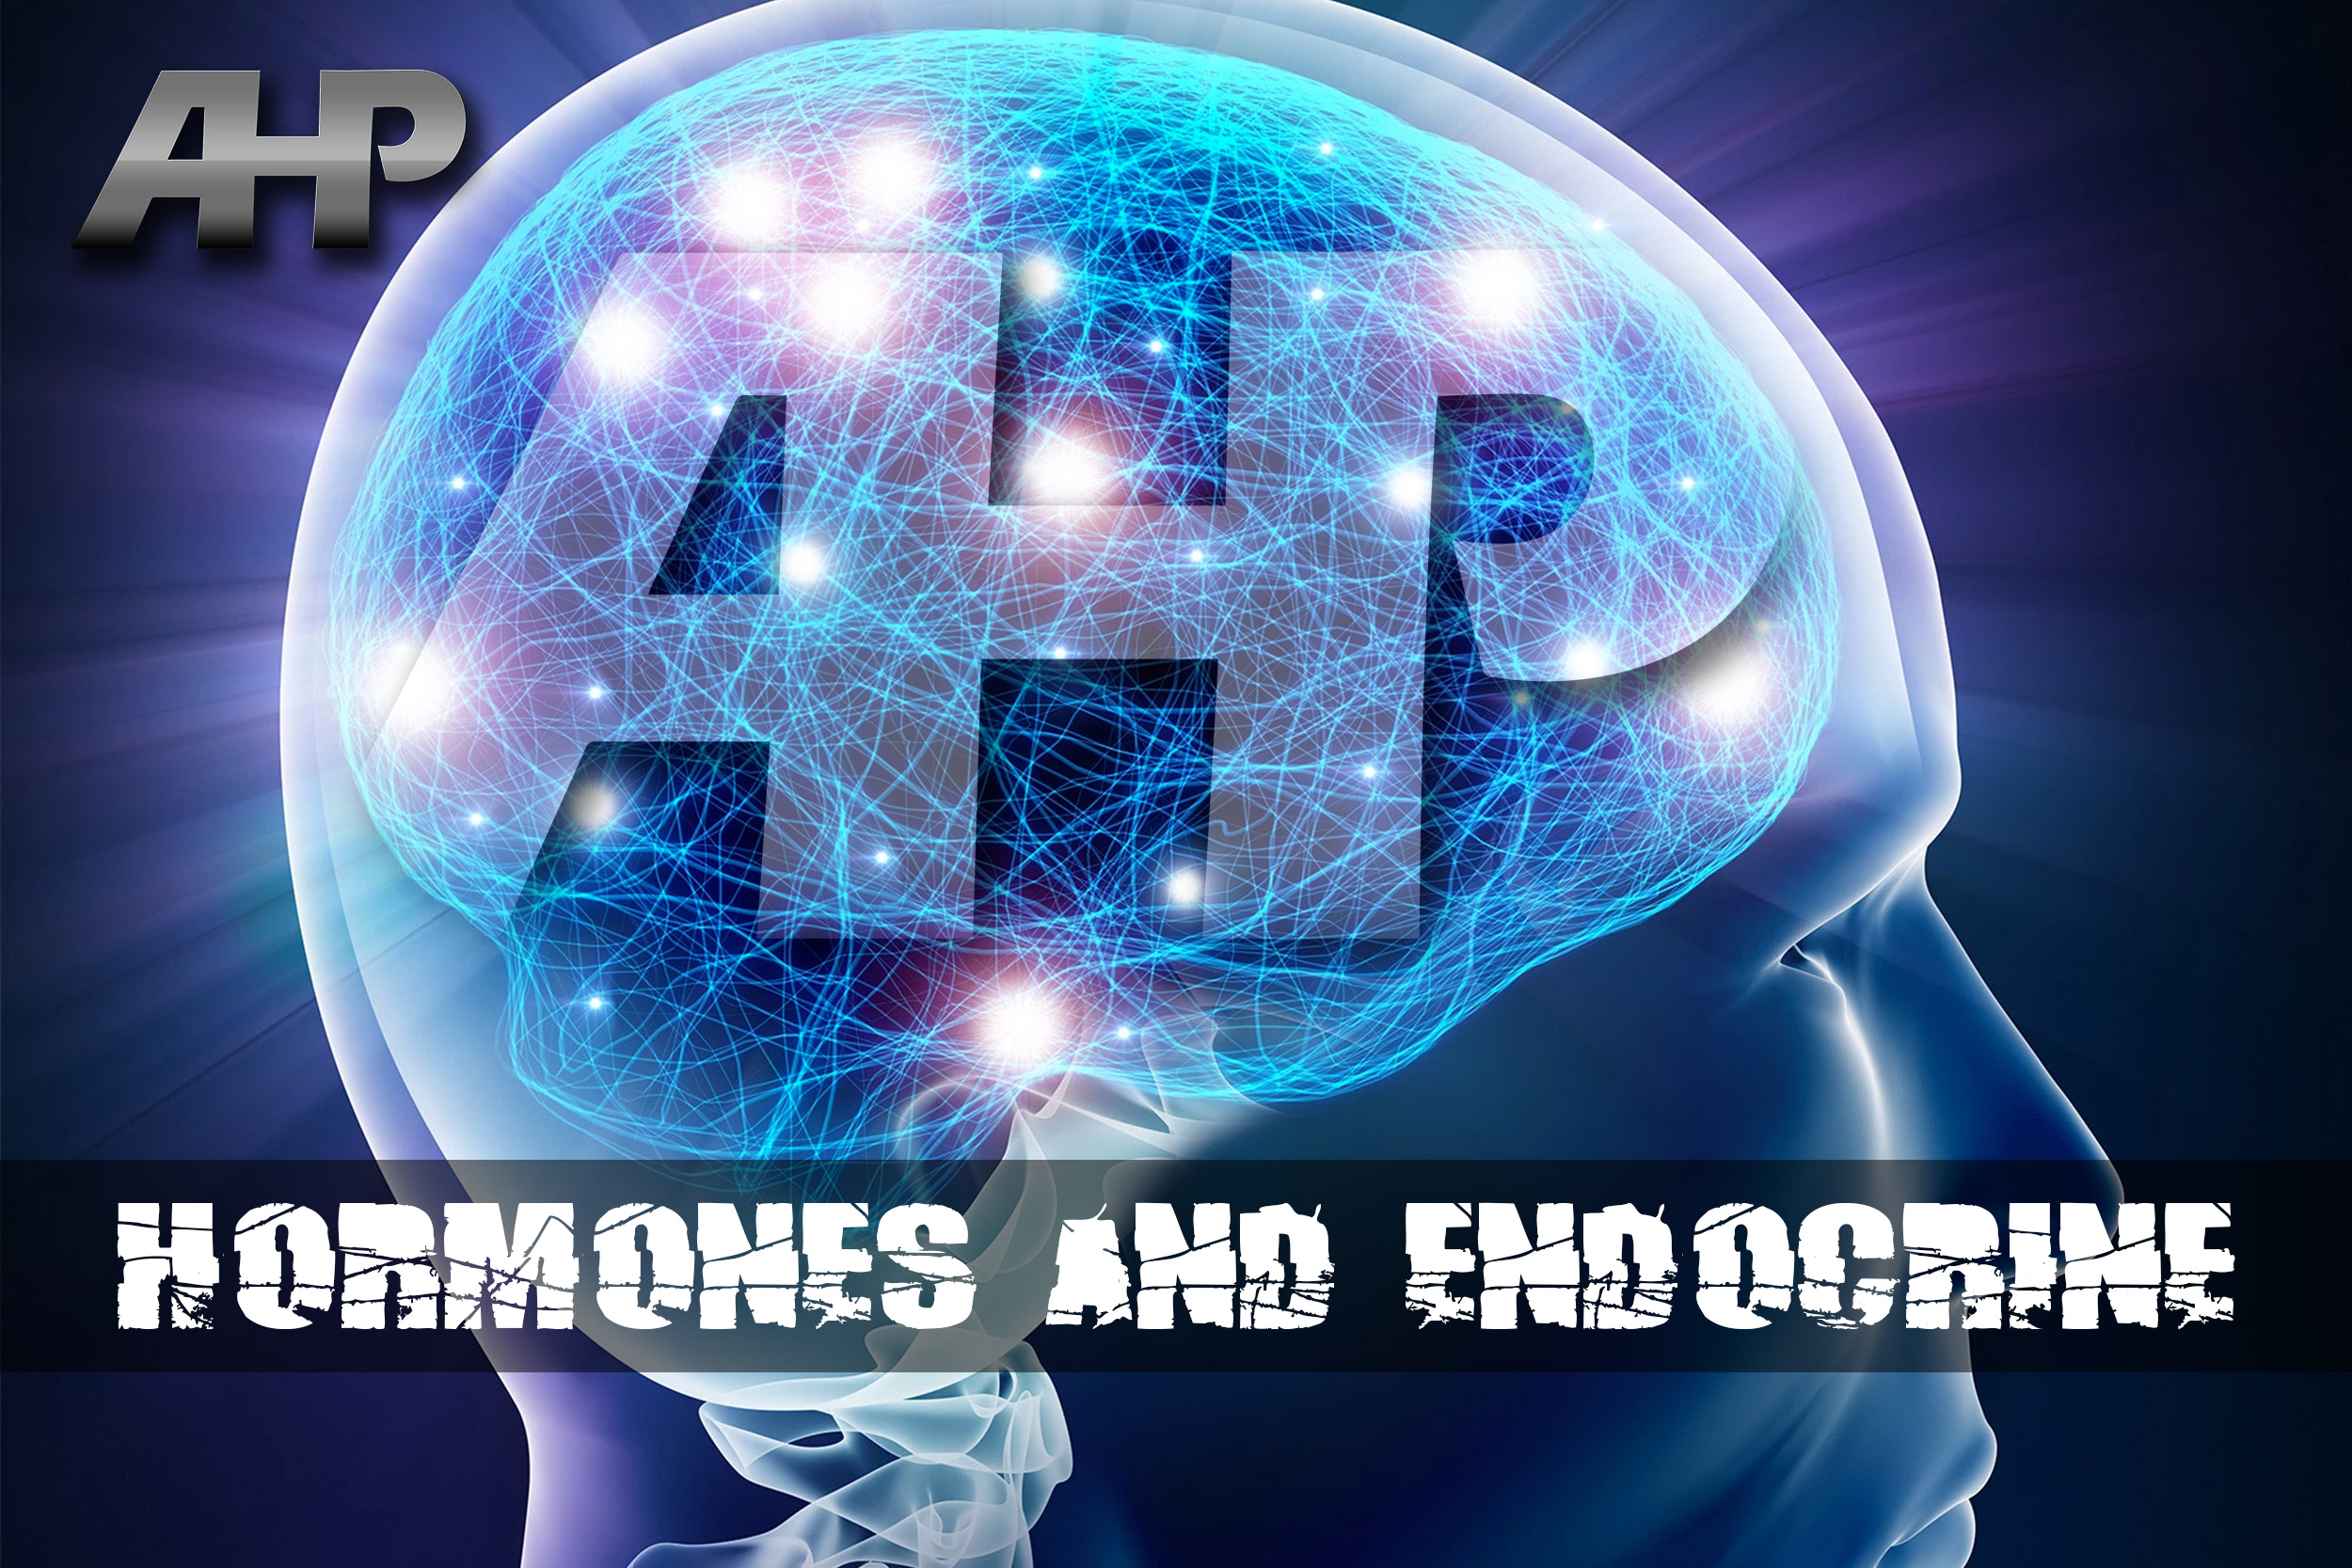 Hormones and Endocrine Transformation Thumbnail (AHP).jpg